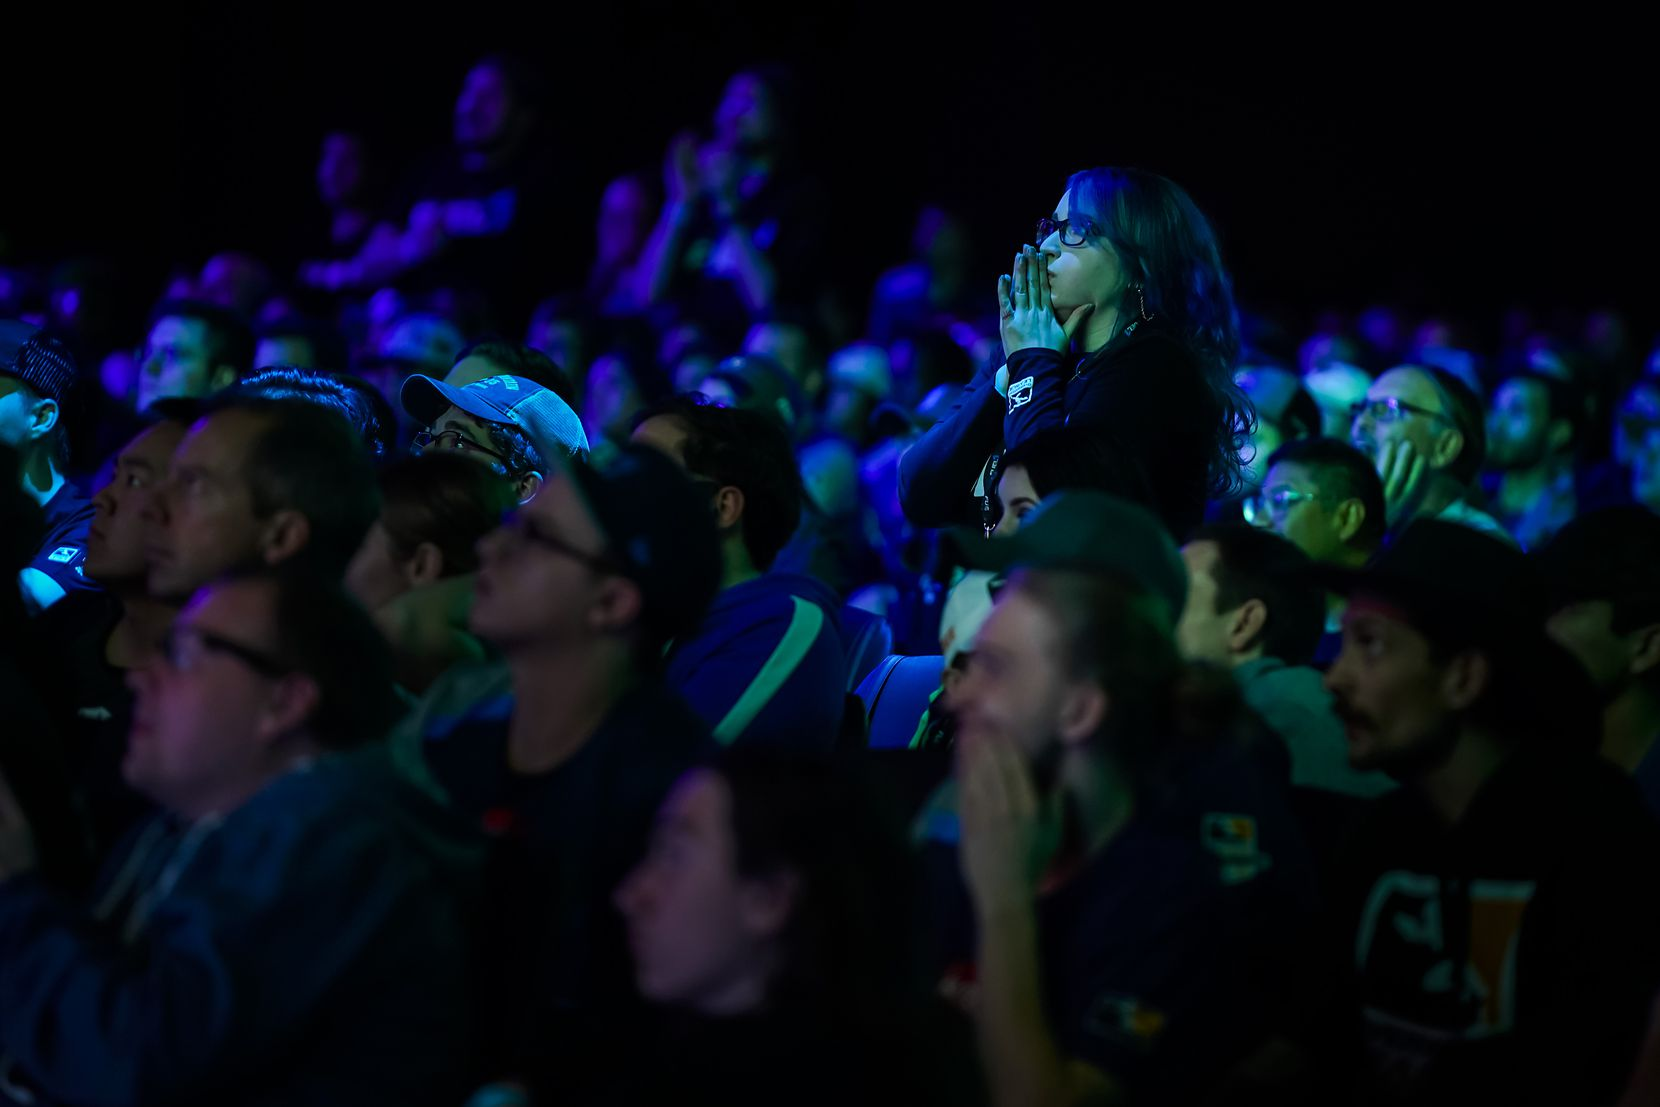 Fans watch as the Dallas Fuel take on the he Los Angeles Valiant during a Overwatch League match at the Arlington Esports Stadium on Saturday, Feb. 8, 2020, in Arlington.